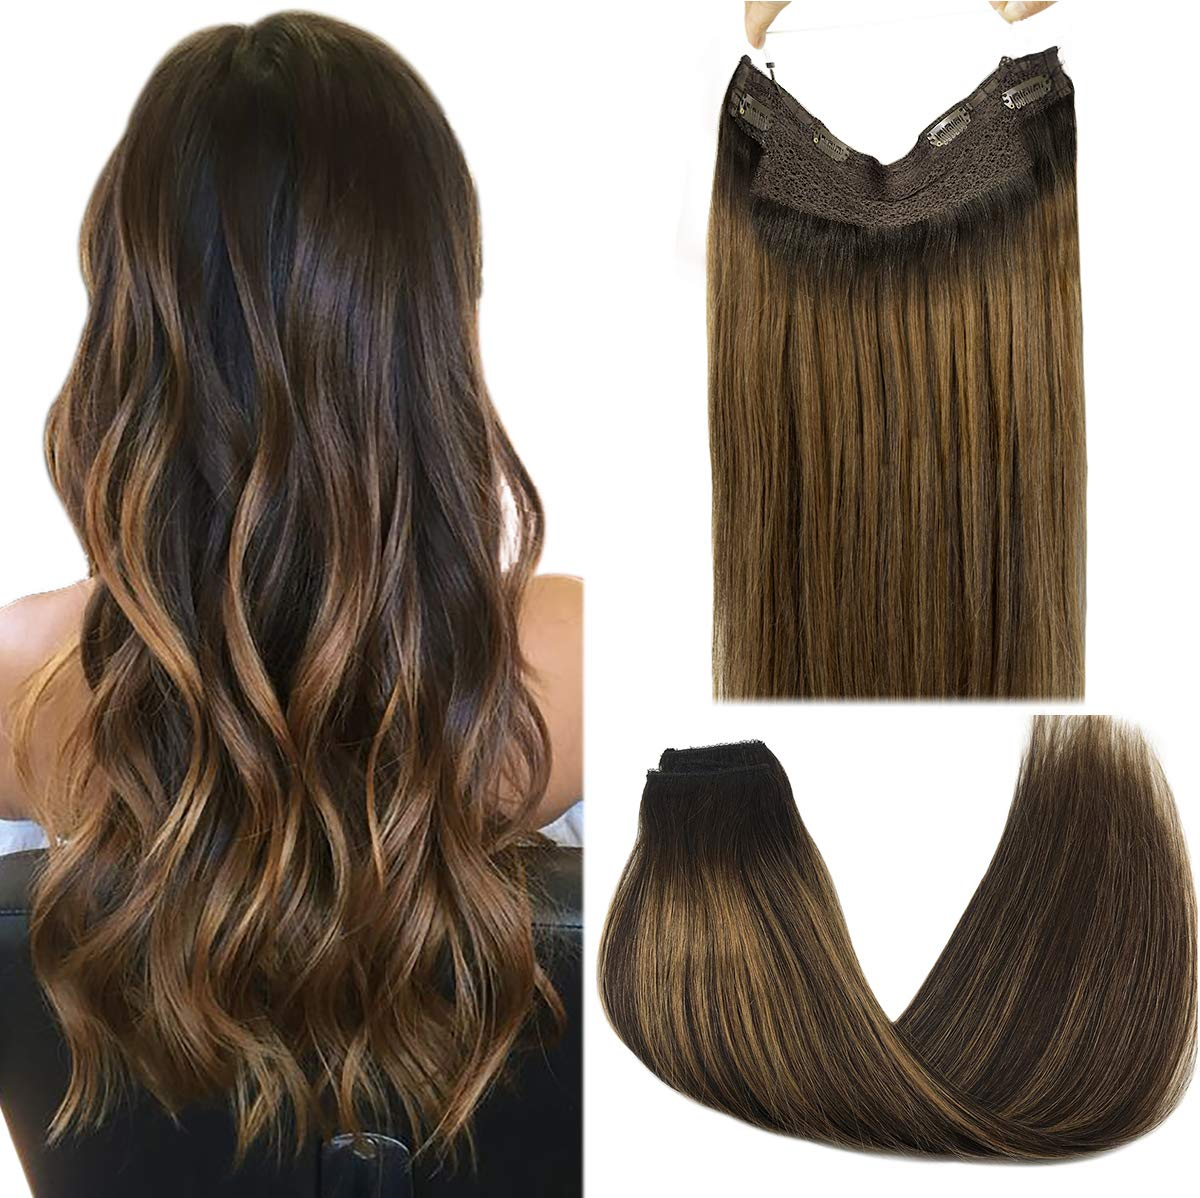 Fish Line Human Hair Extension Halo Hair Extensions Straight  Invisible Wire Hair Extensions Remy Hair Fishing Wire with 4Clips